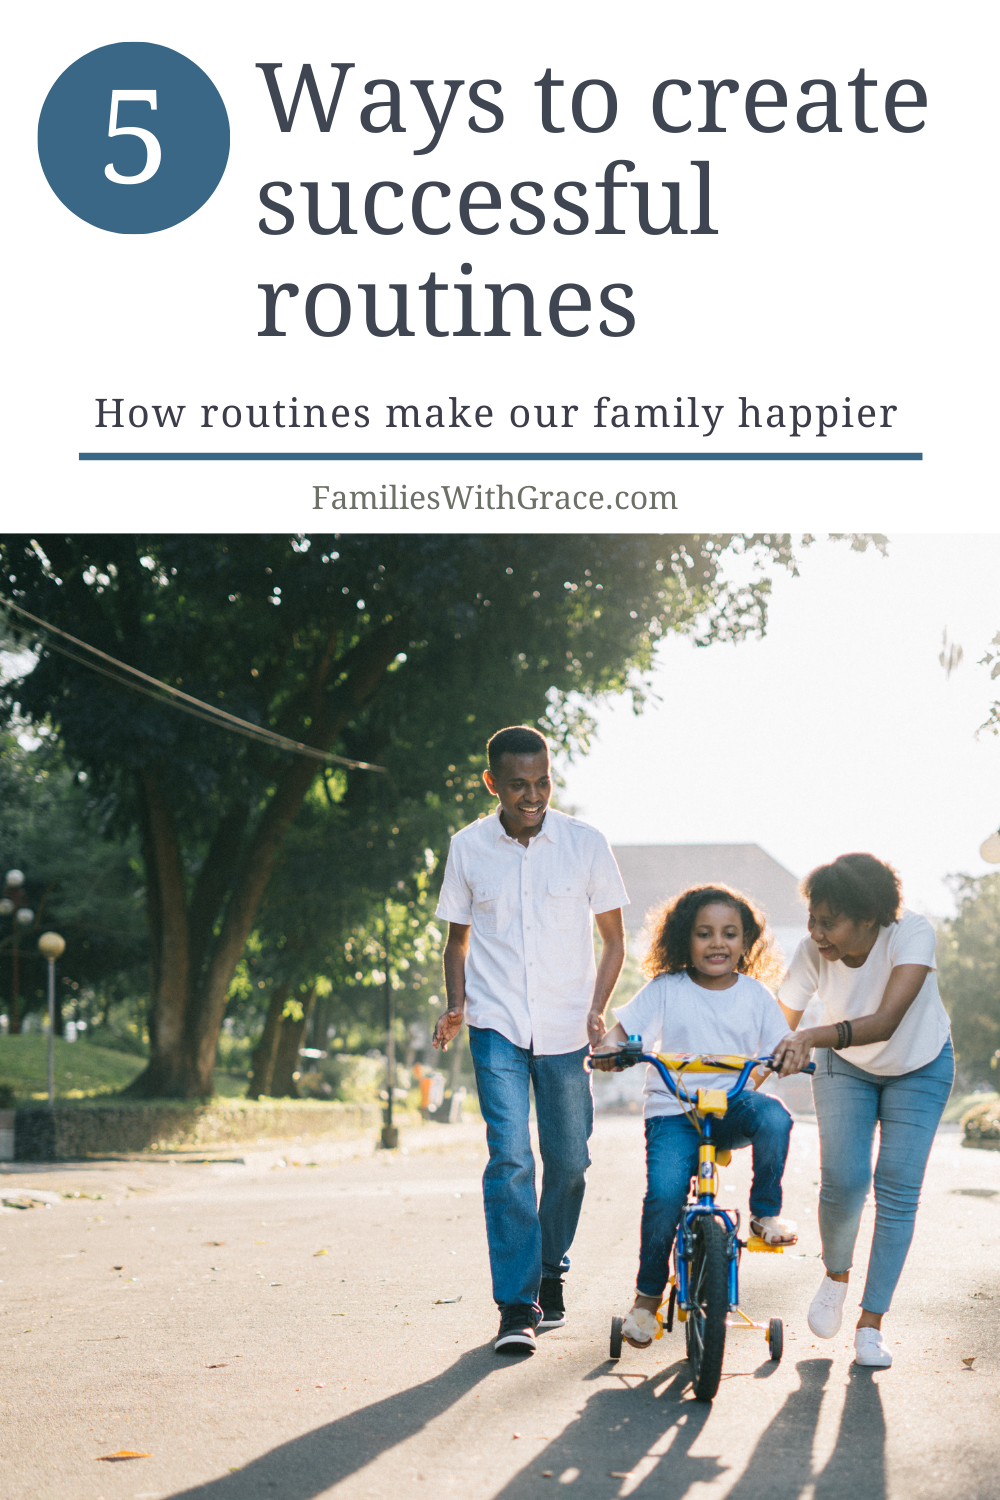 How routines make our family happier